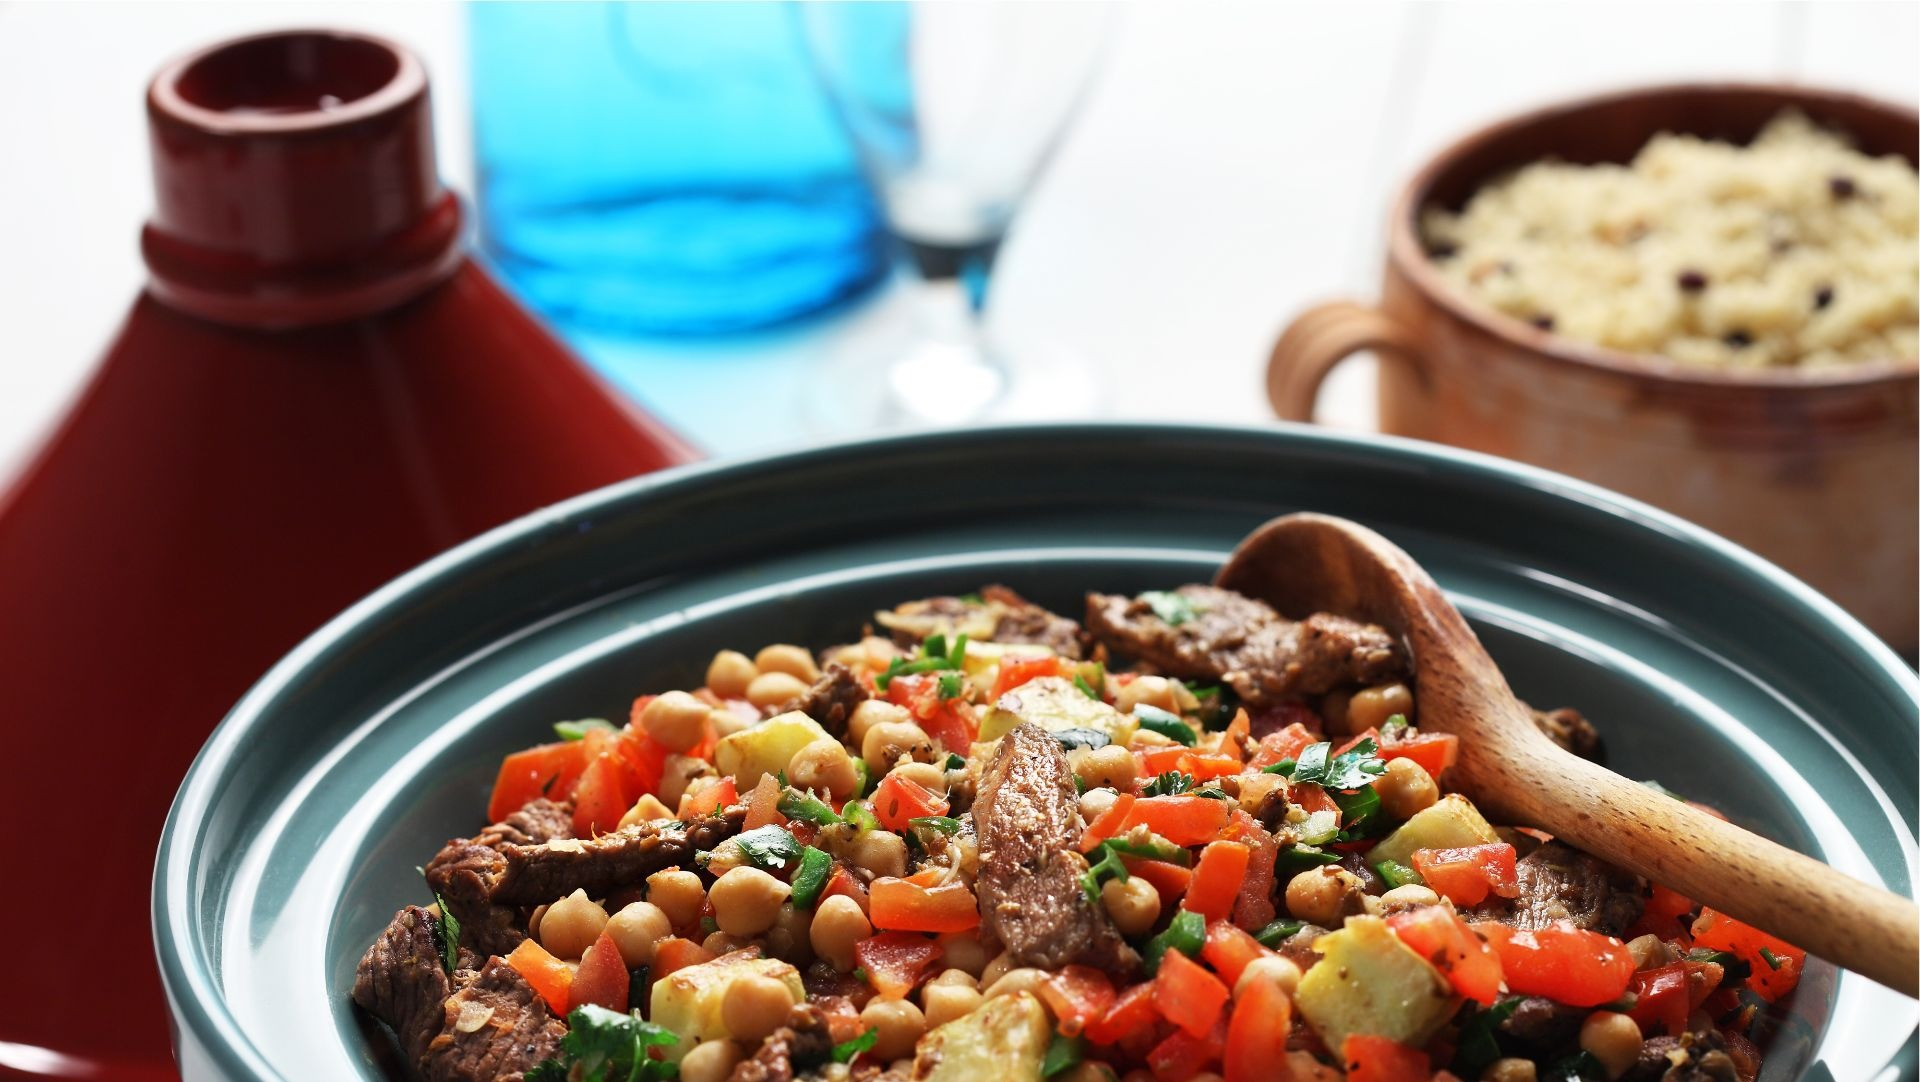 Bowl filled with chickpeas, lamb, chopped tomato, couscous and parsley